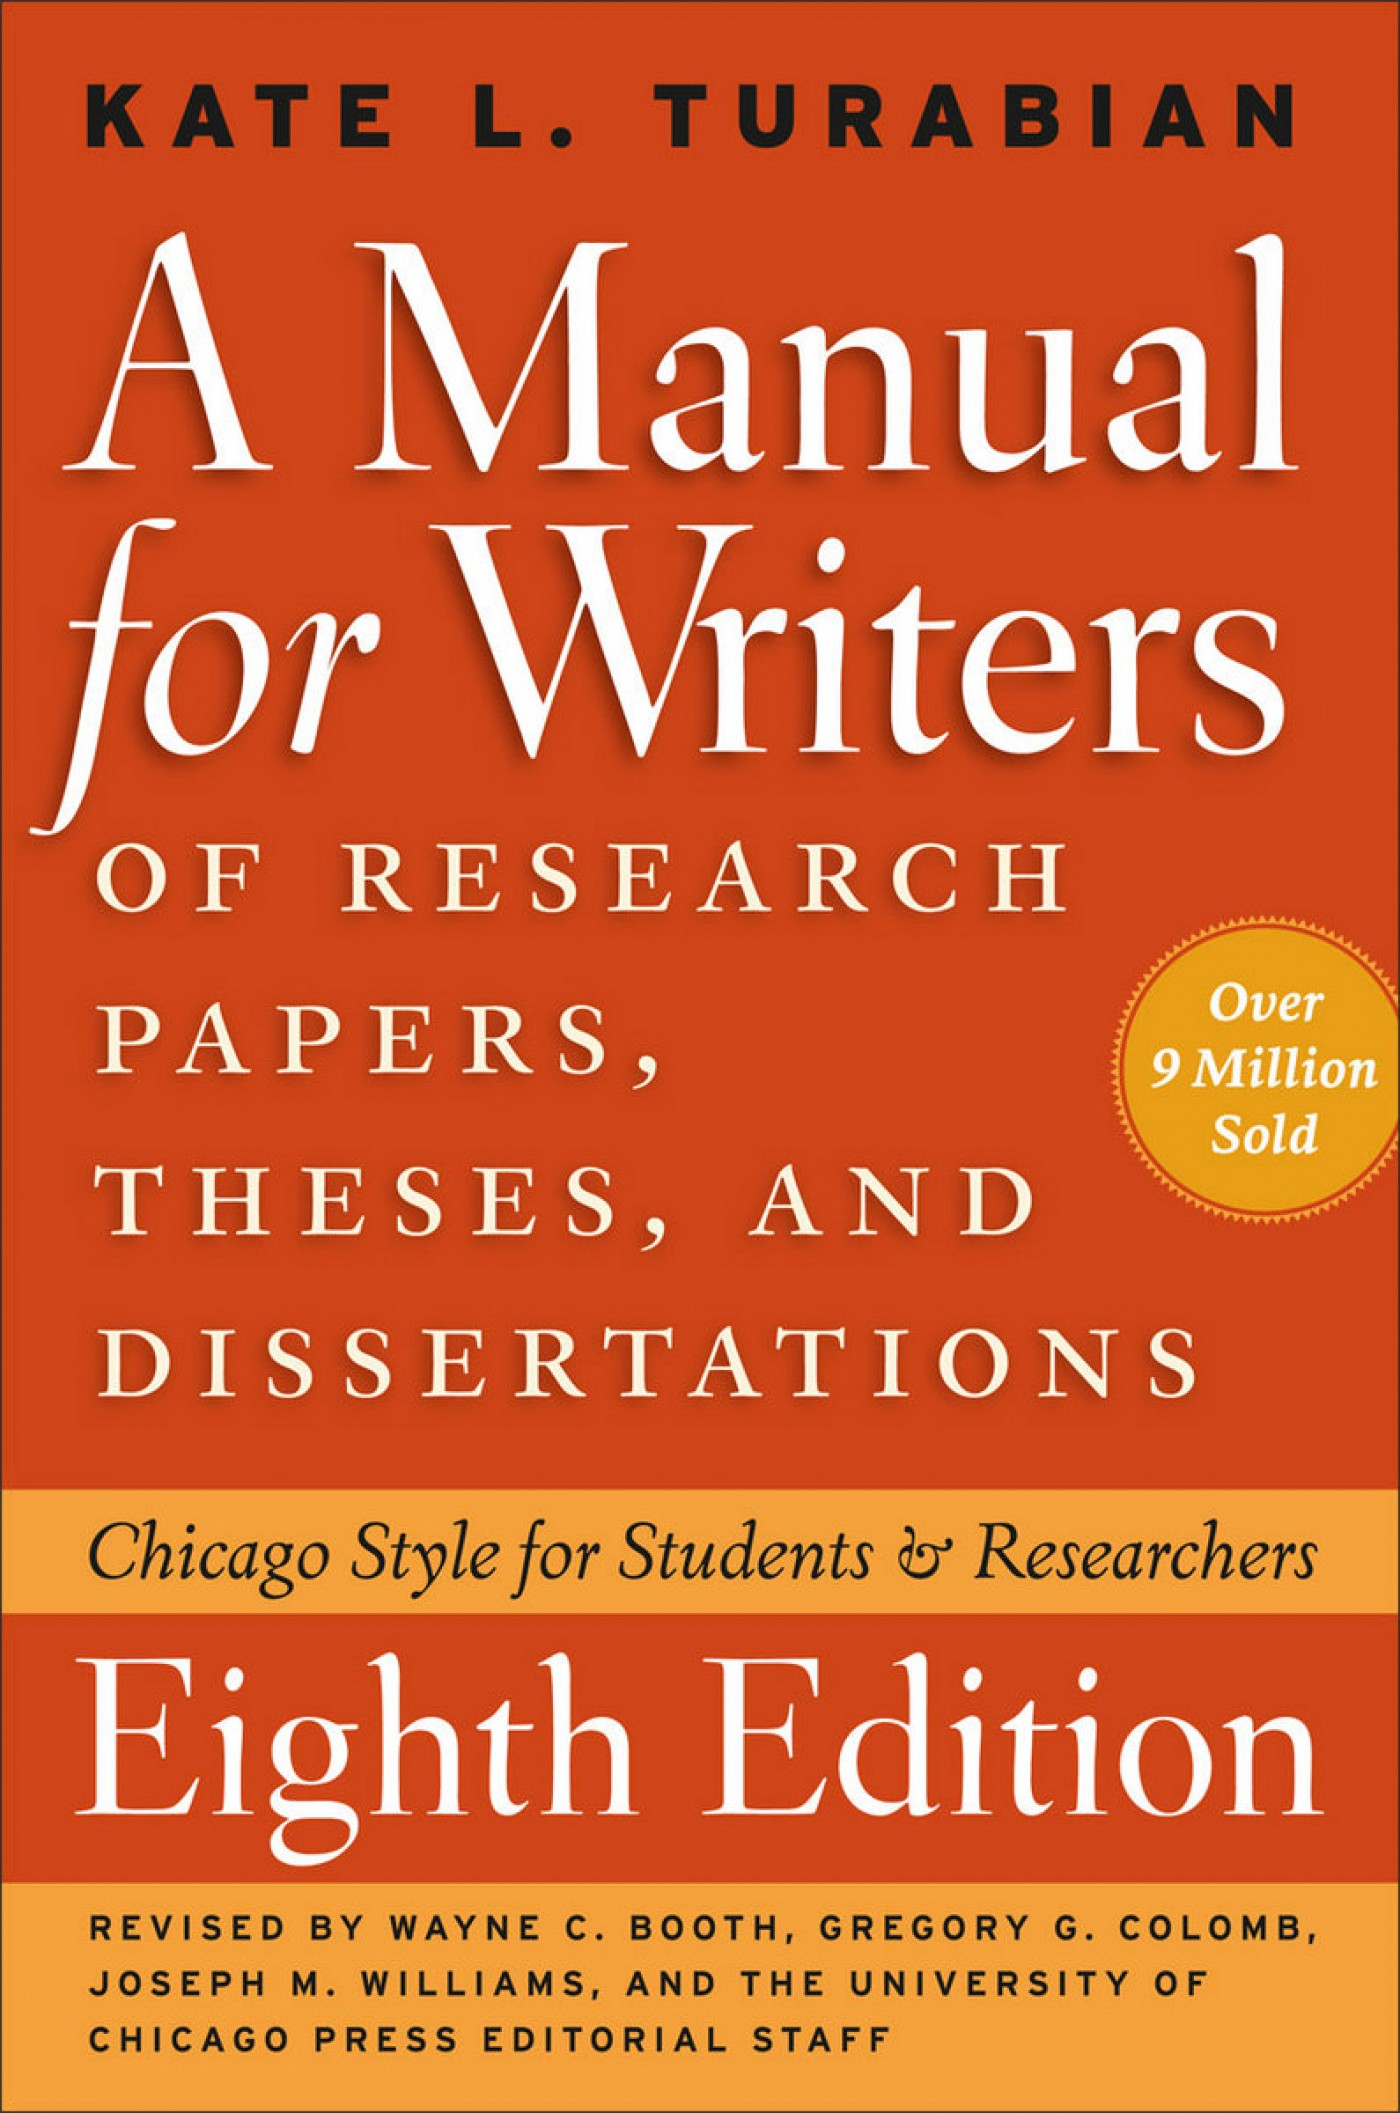 002 Frontcover Manual For Writers Of Researchs Theses And Dissertations Sensational A Research Papers 8th Edition Pdf Eighth 1400